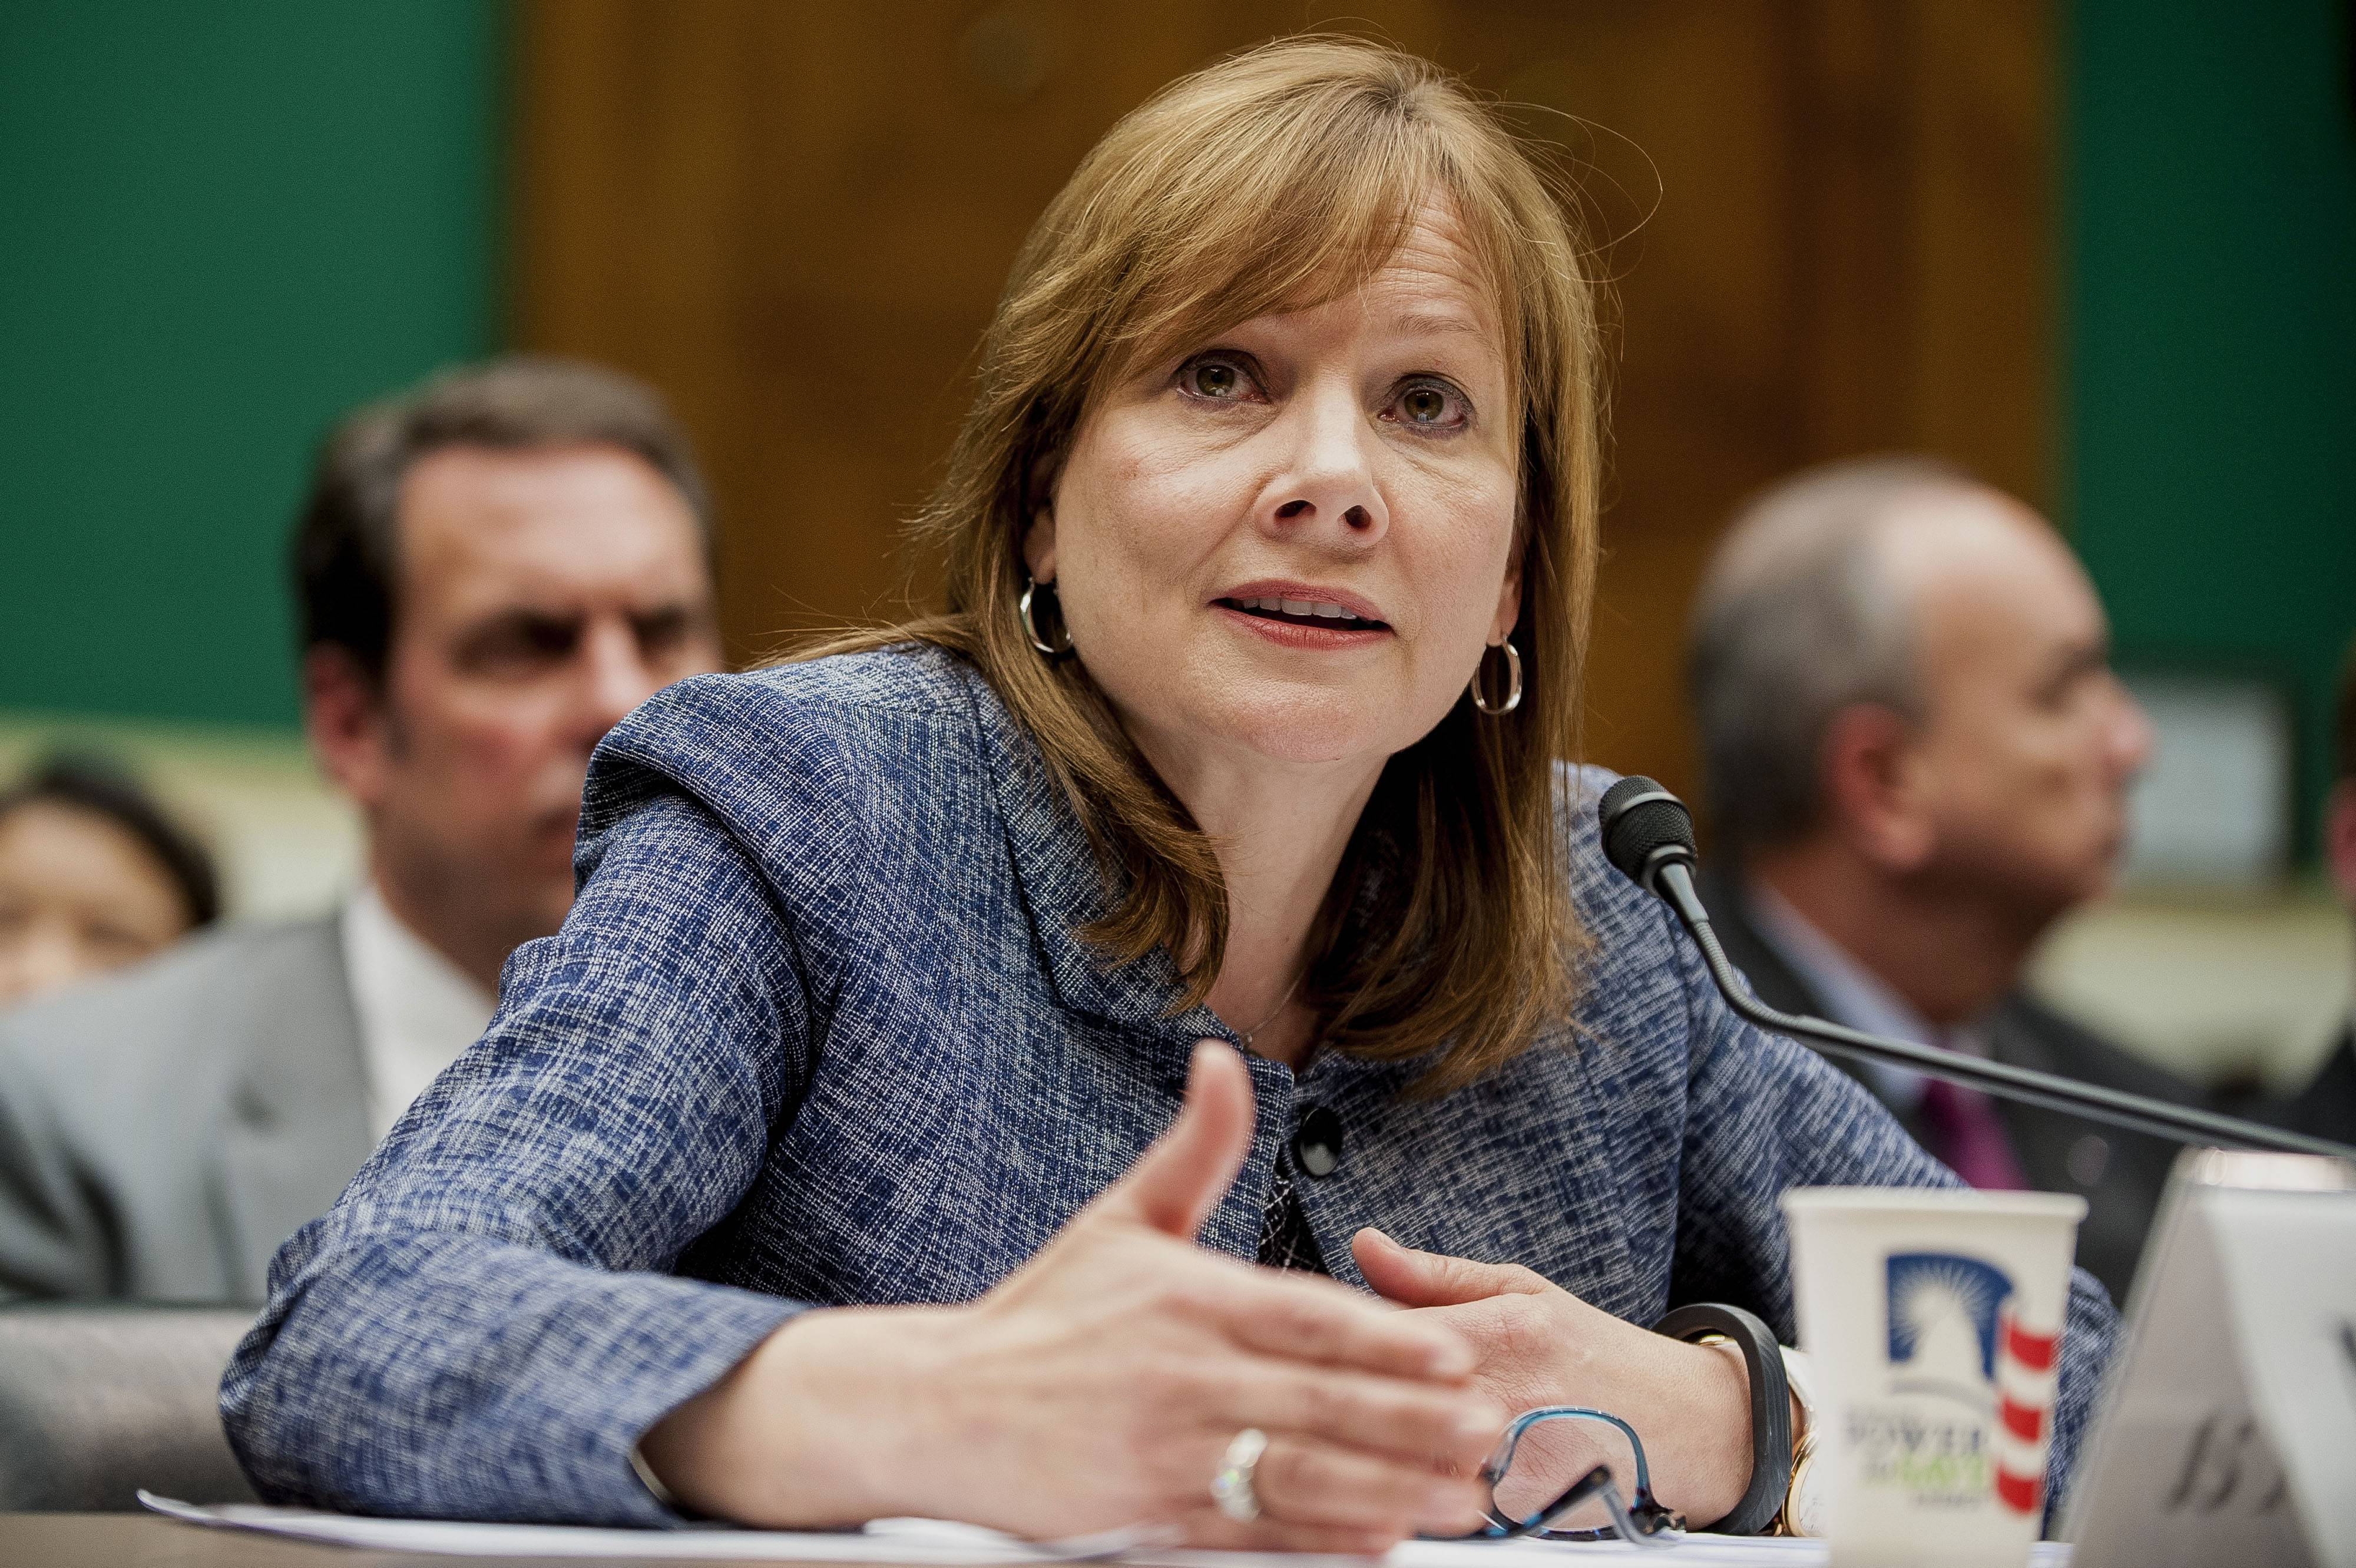 "General Motors CEO Mary Barra fielded pointed questions and accusations from U.S. senators again Wednesday, with one saying GM had a ""culture of cover-up"" and another predicting it may face criminal liability."